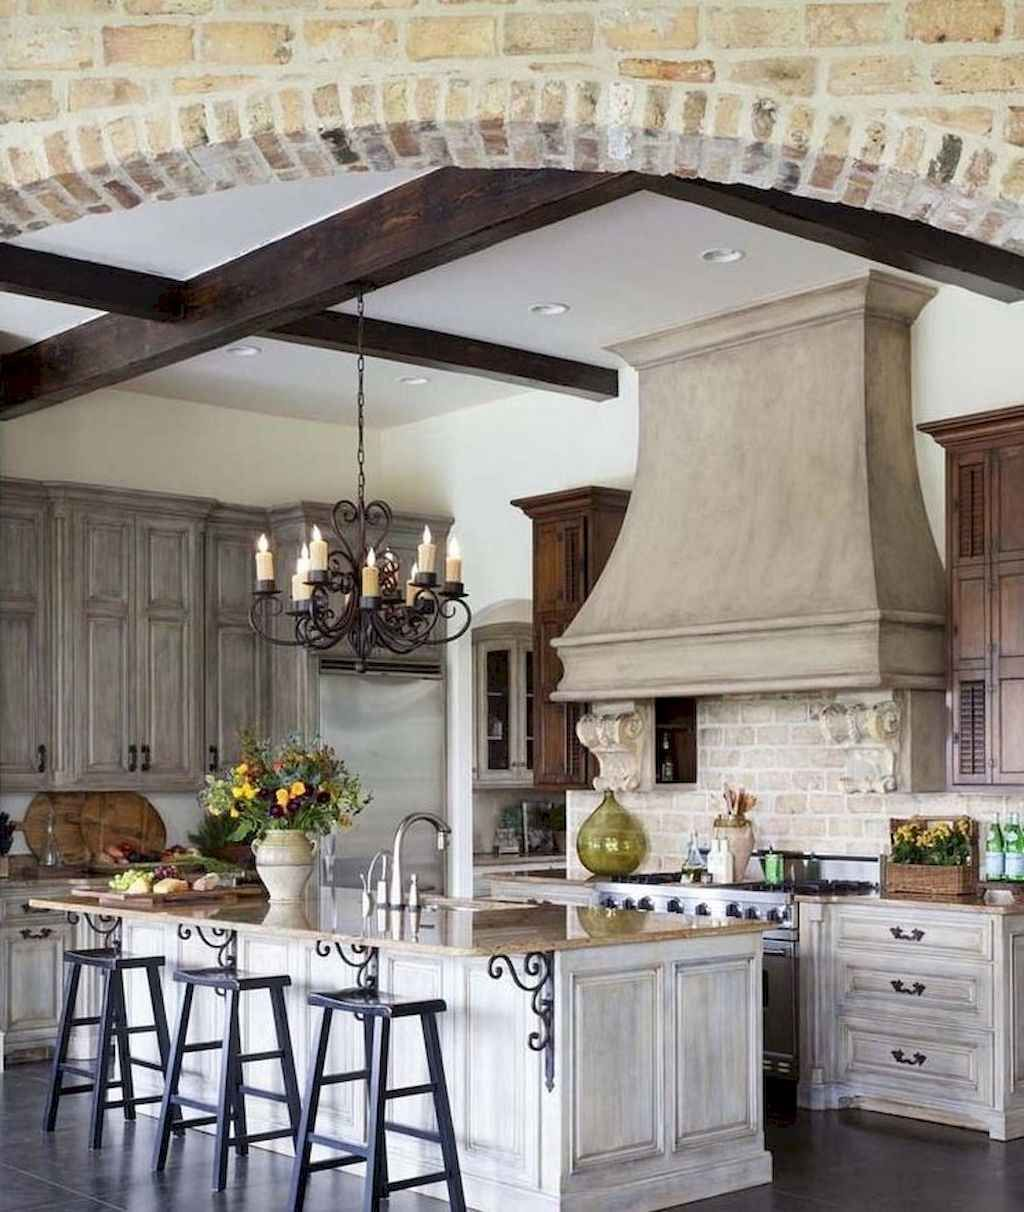 Incredible Kitchen Remodeling Ideas: 14 Incredible French Country Kitchen Design Ideas